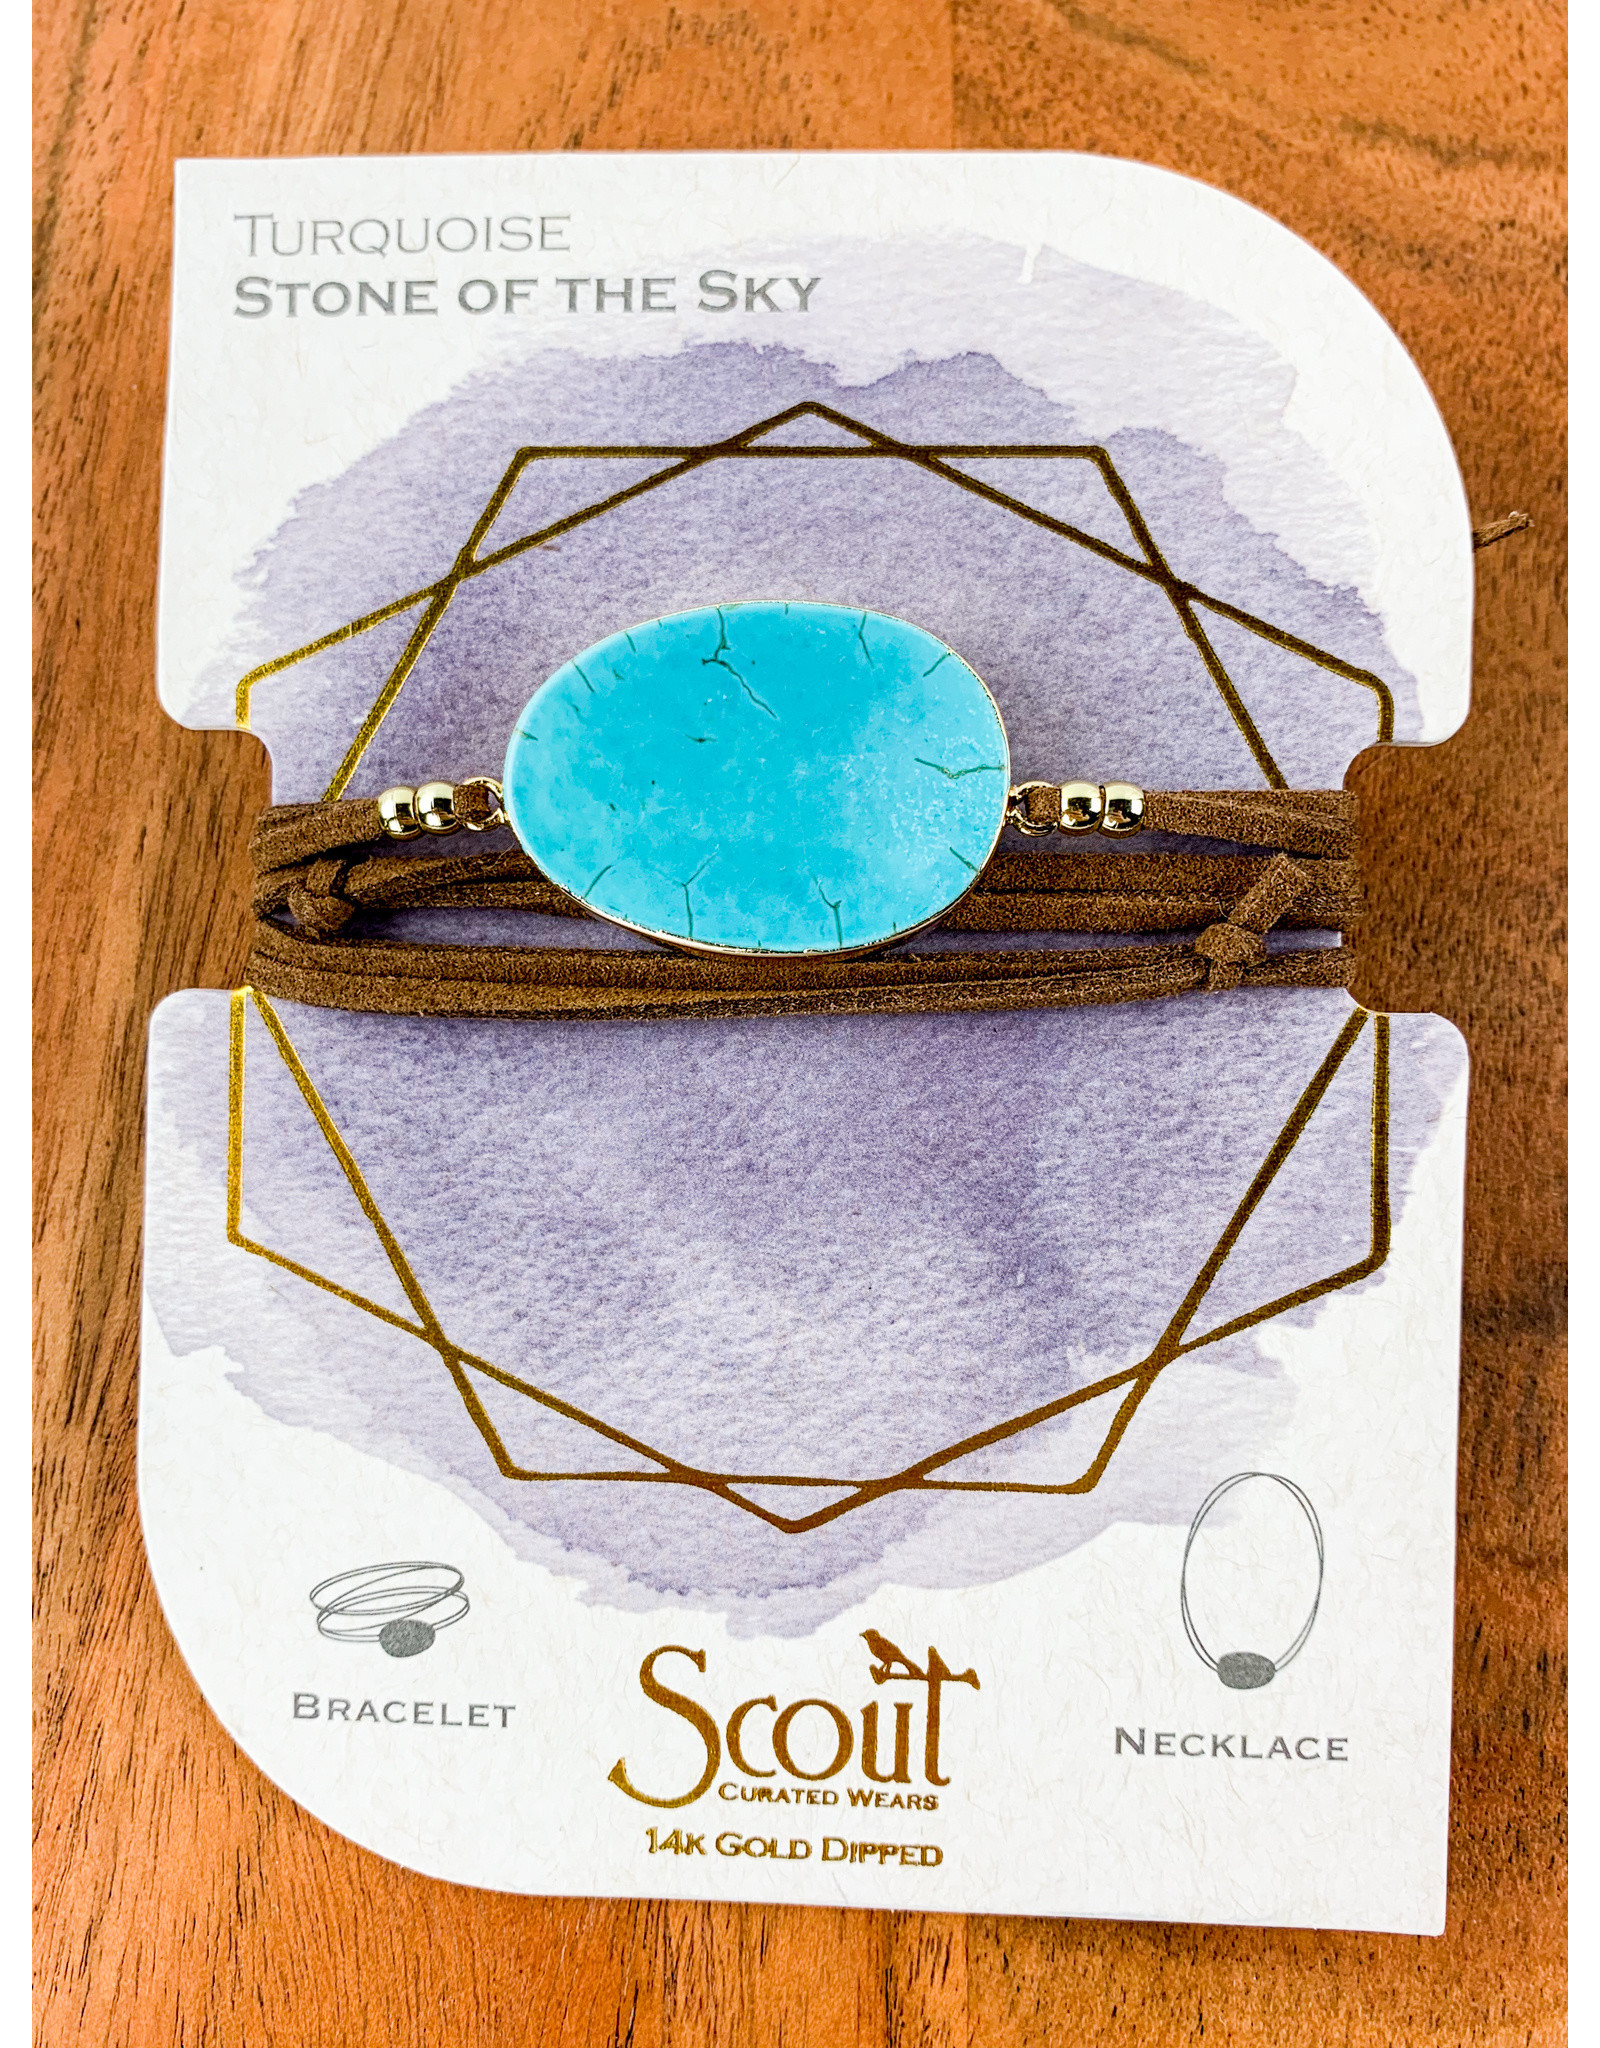 Suede Turquoise Gold Stone of Sky